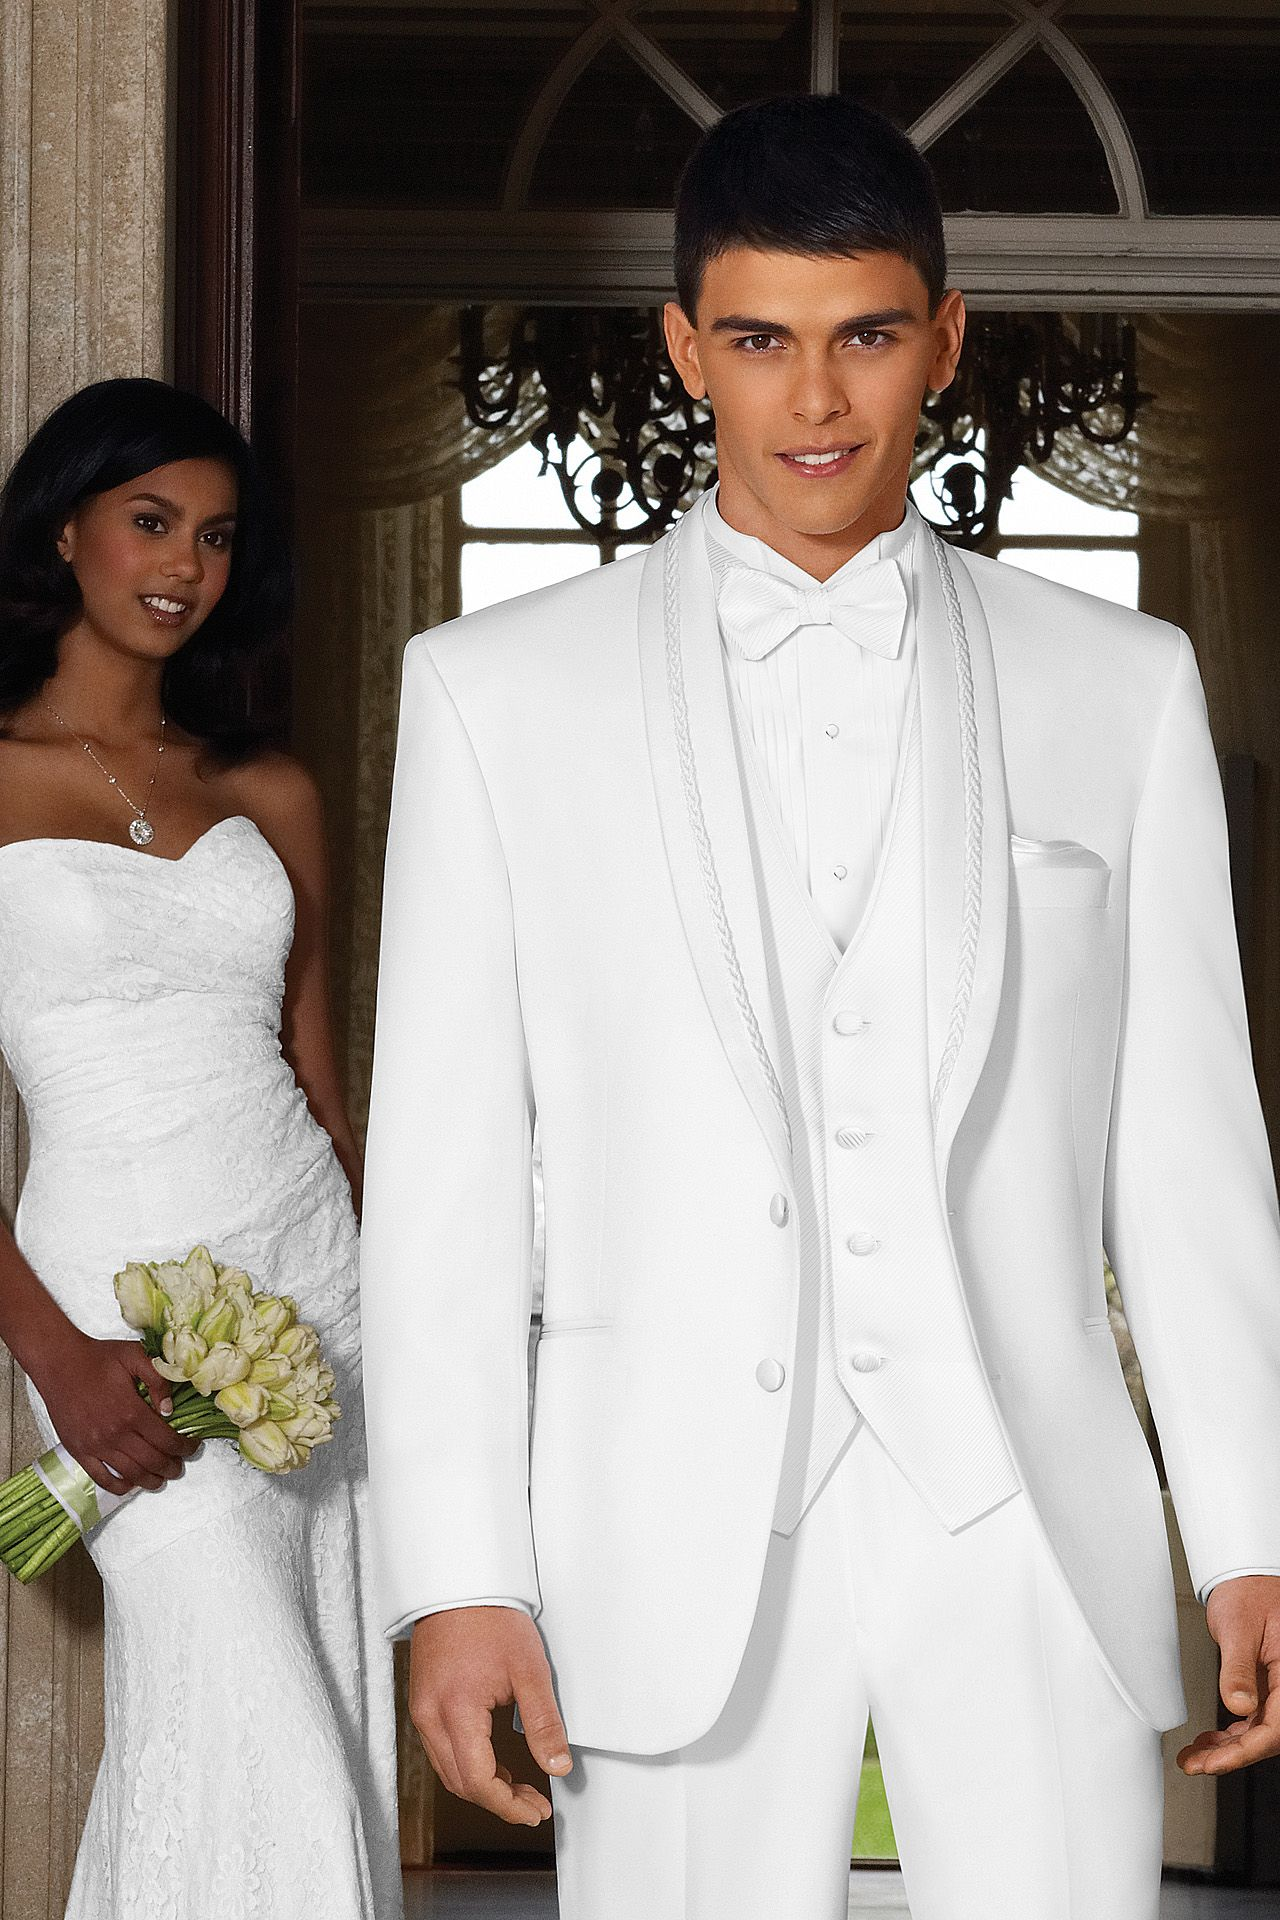 I like the groom in all white too. Jim's Formal Wear